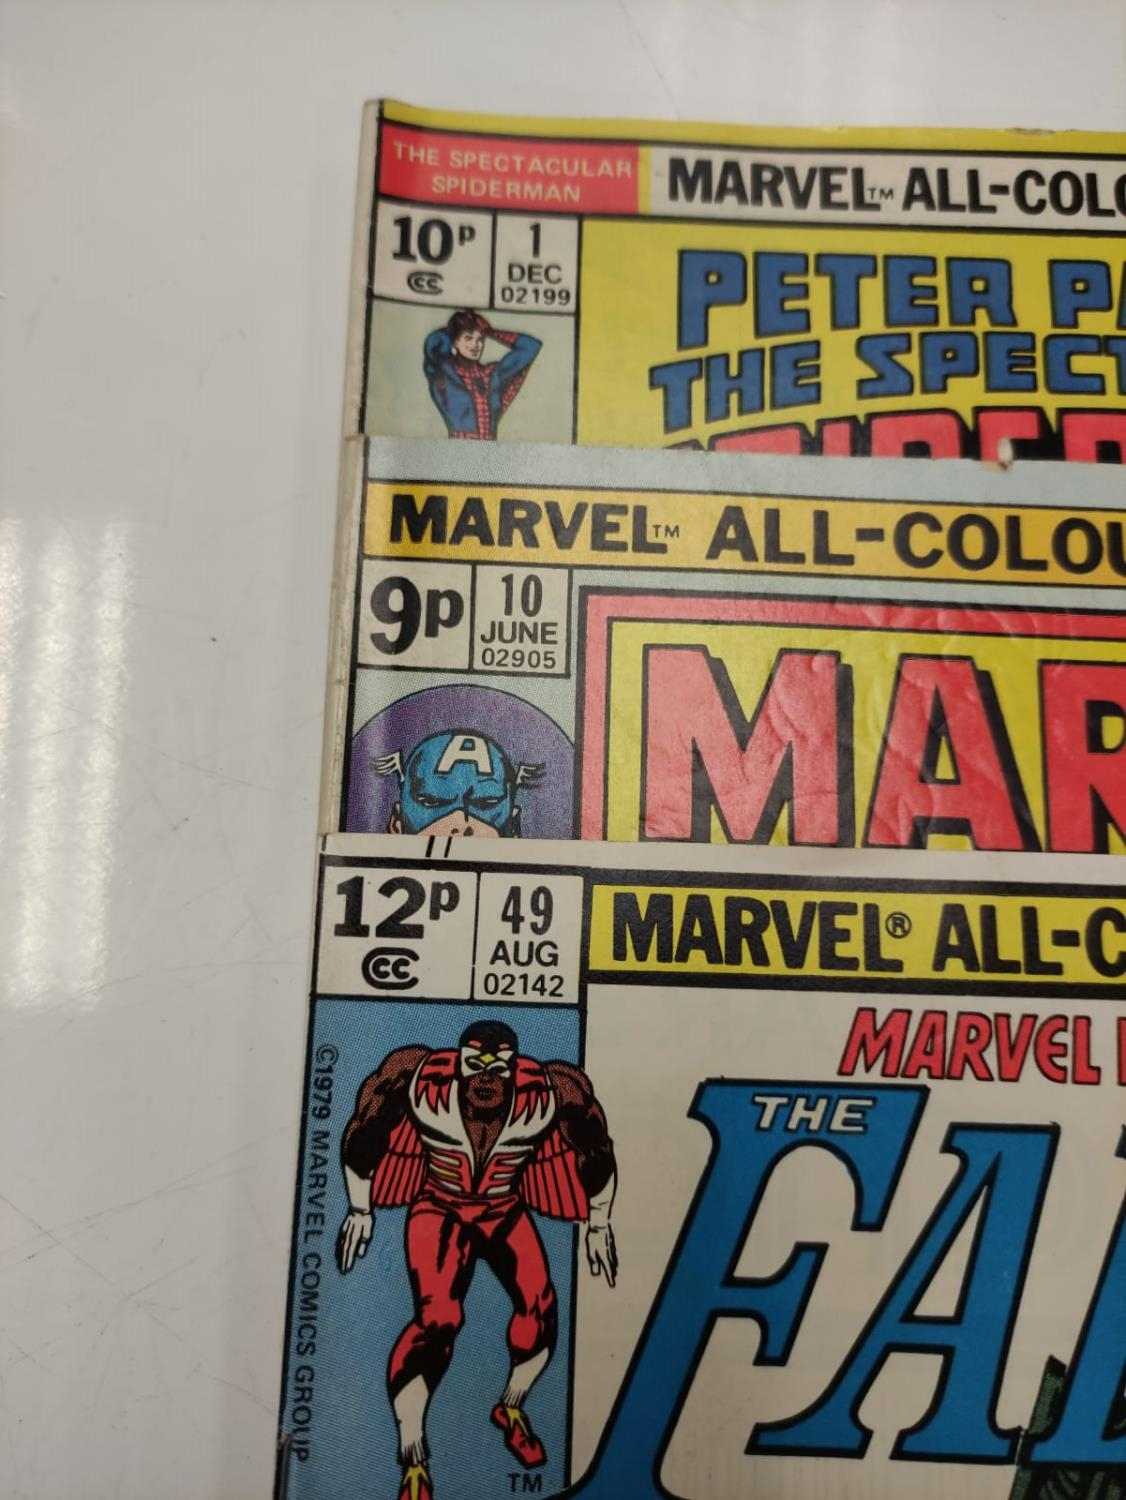 3 Eclectic Vintage Marvel Comics, including the rare 'Peter Parker, The Spectacular Spider-Man'. - Image 7 of 8